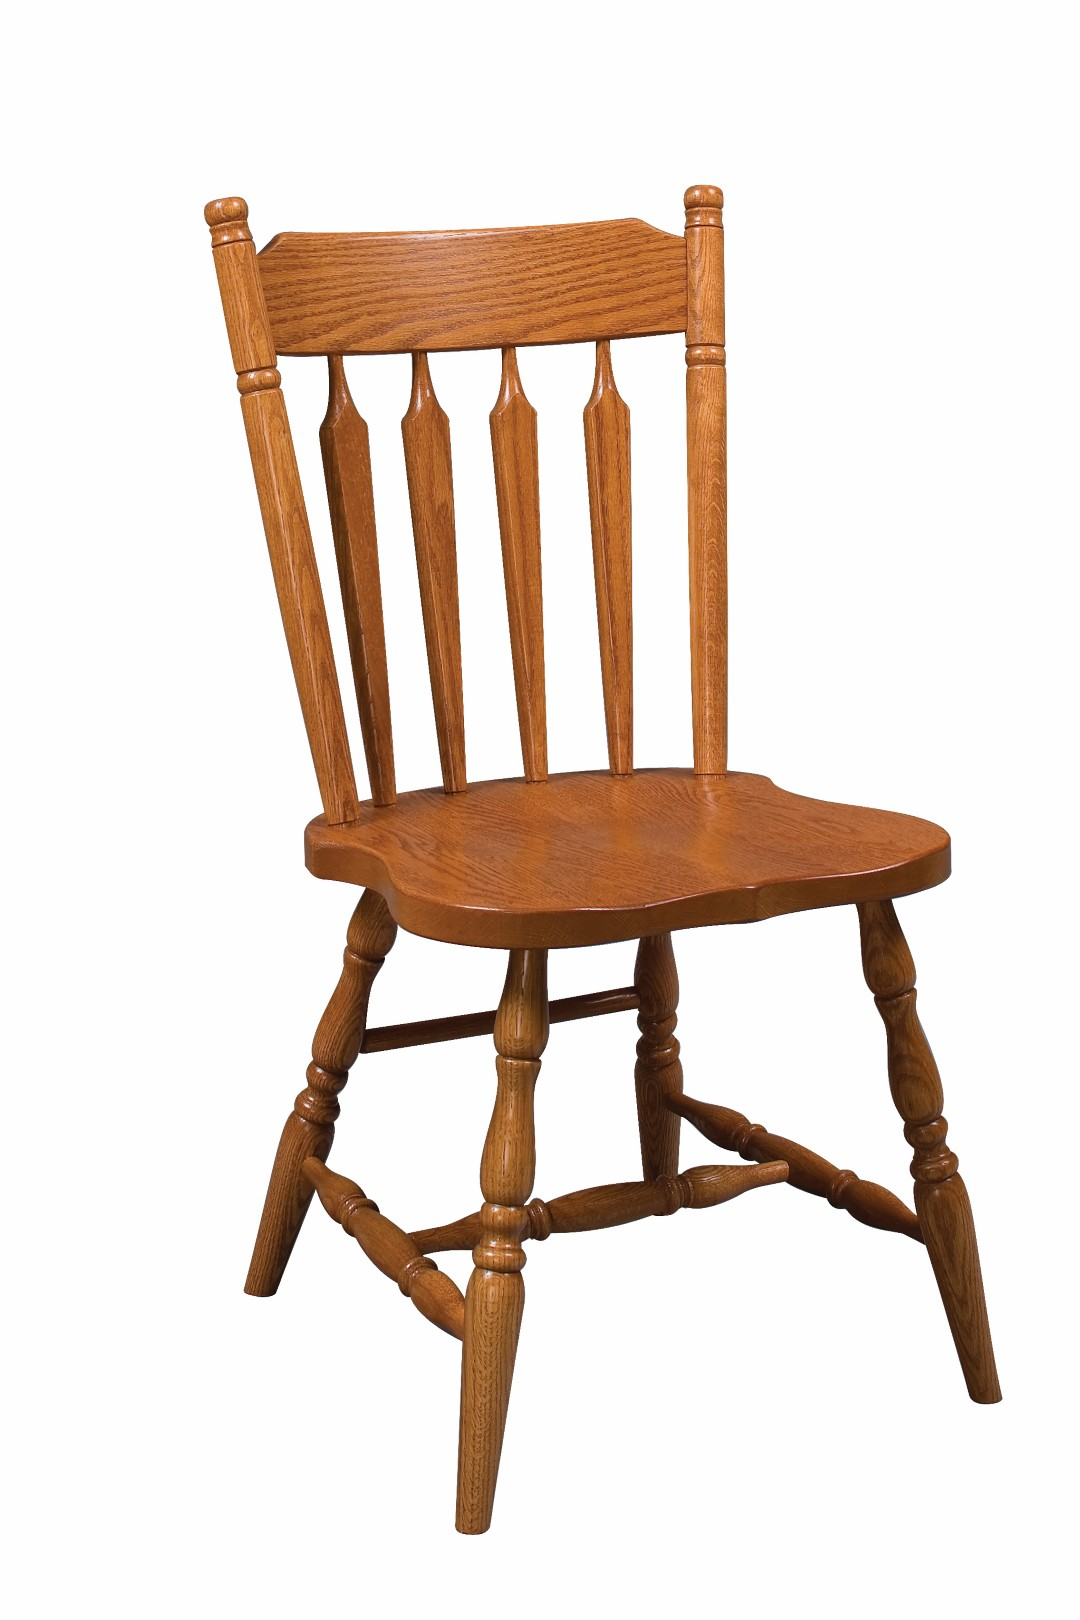 Colonial Arrowback Chair - Town & Country Furniture